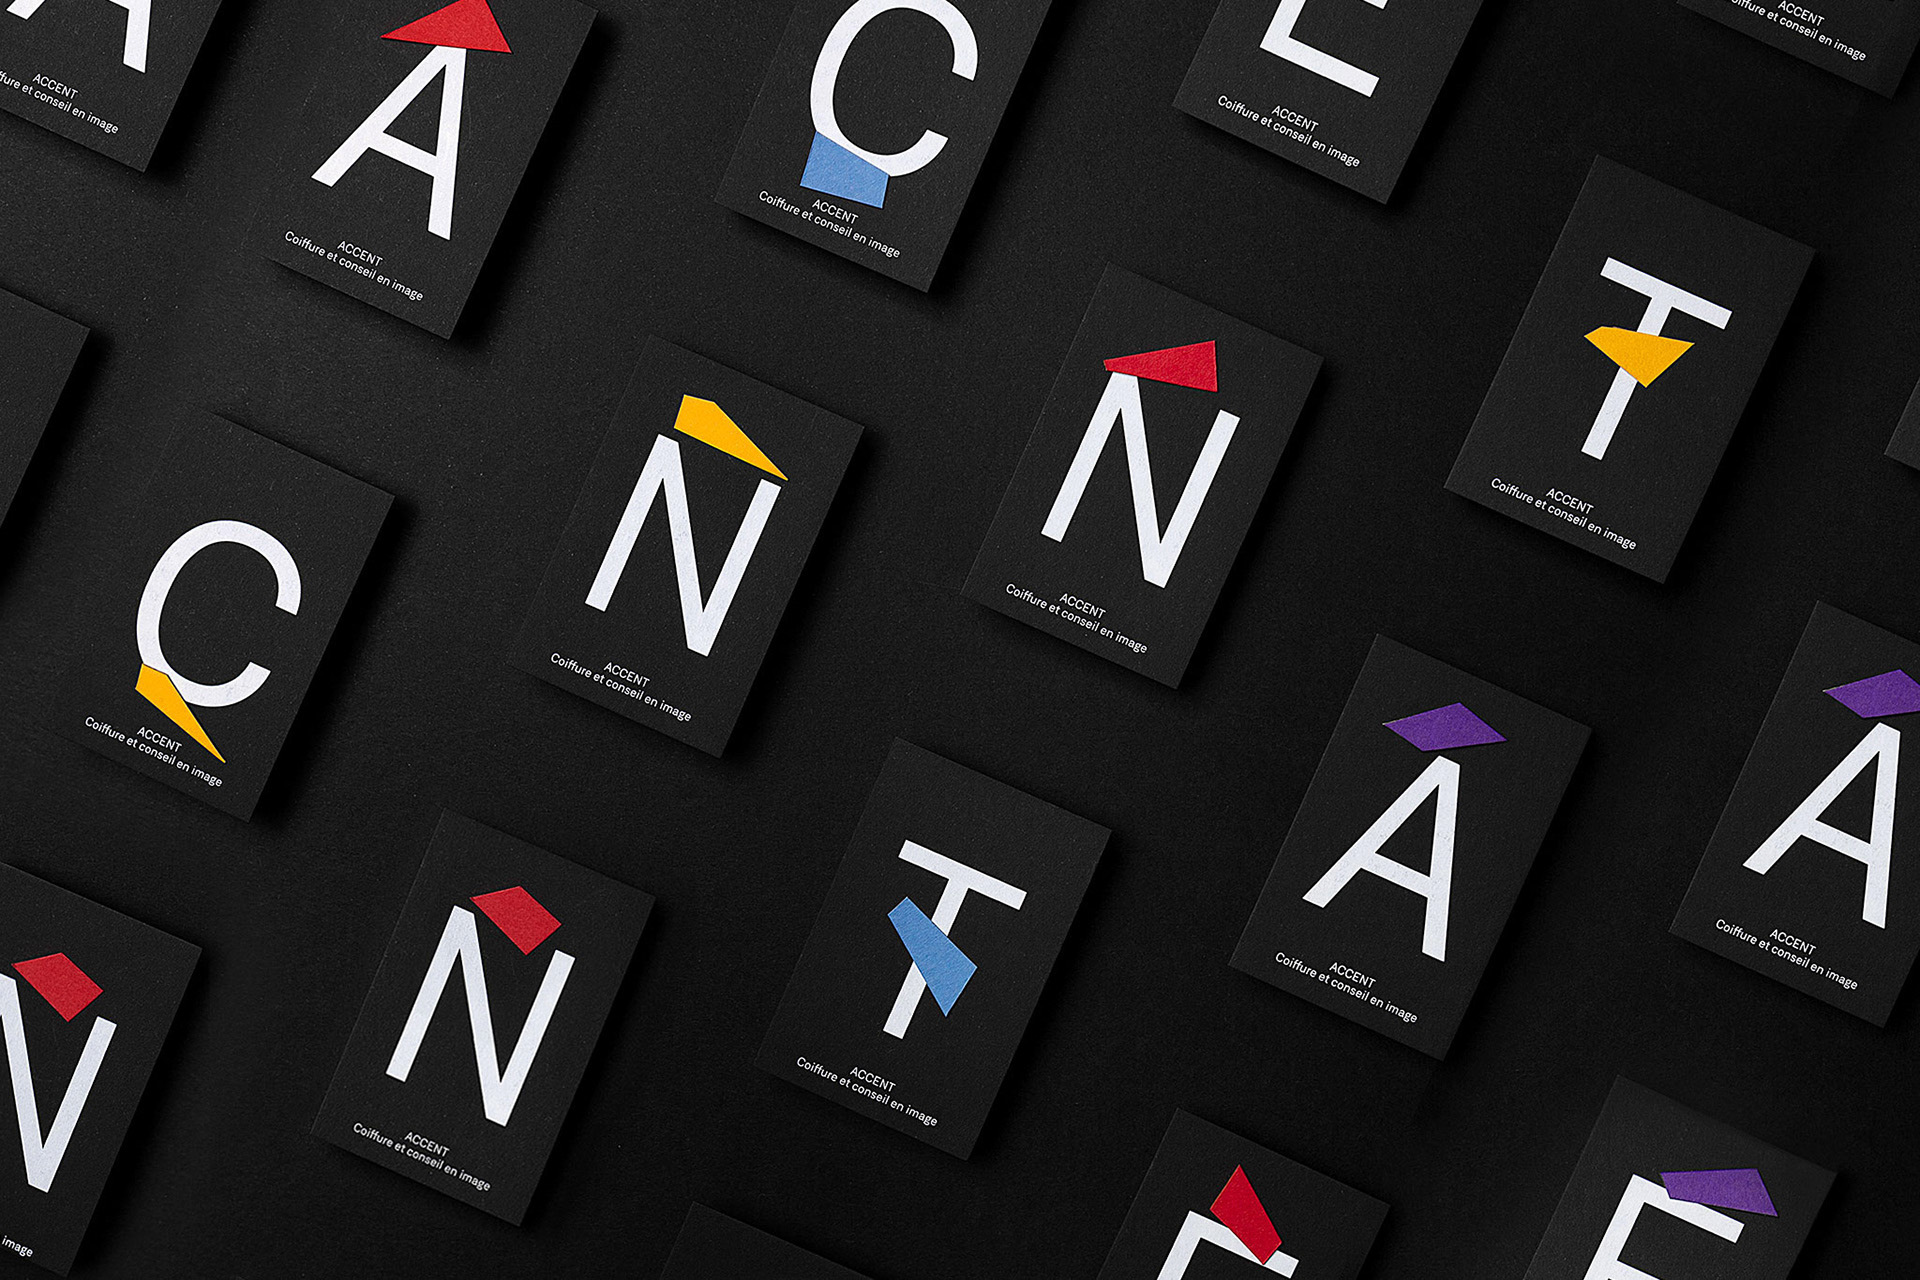 ACCENT Branding and Visual Identity